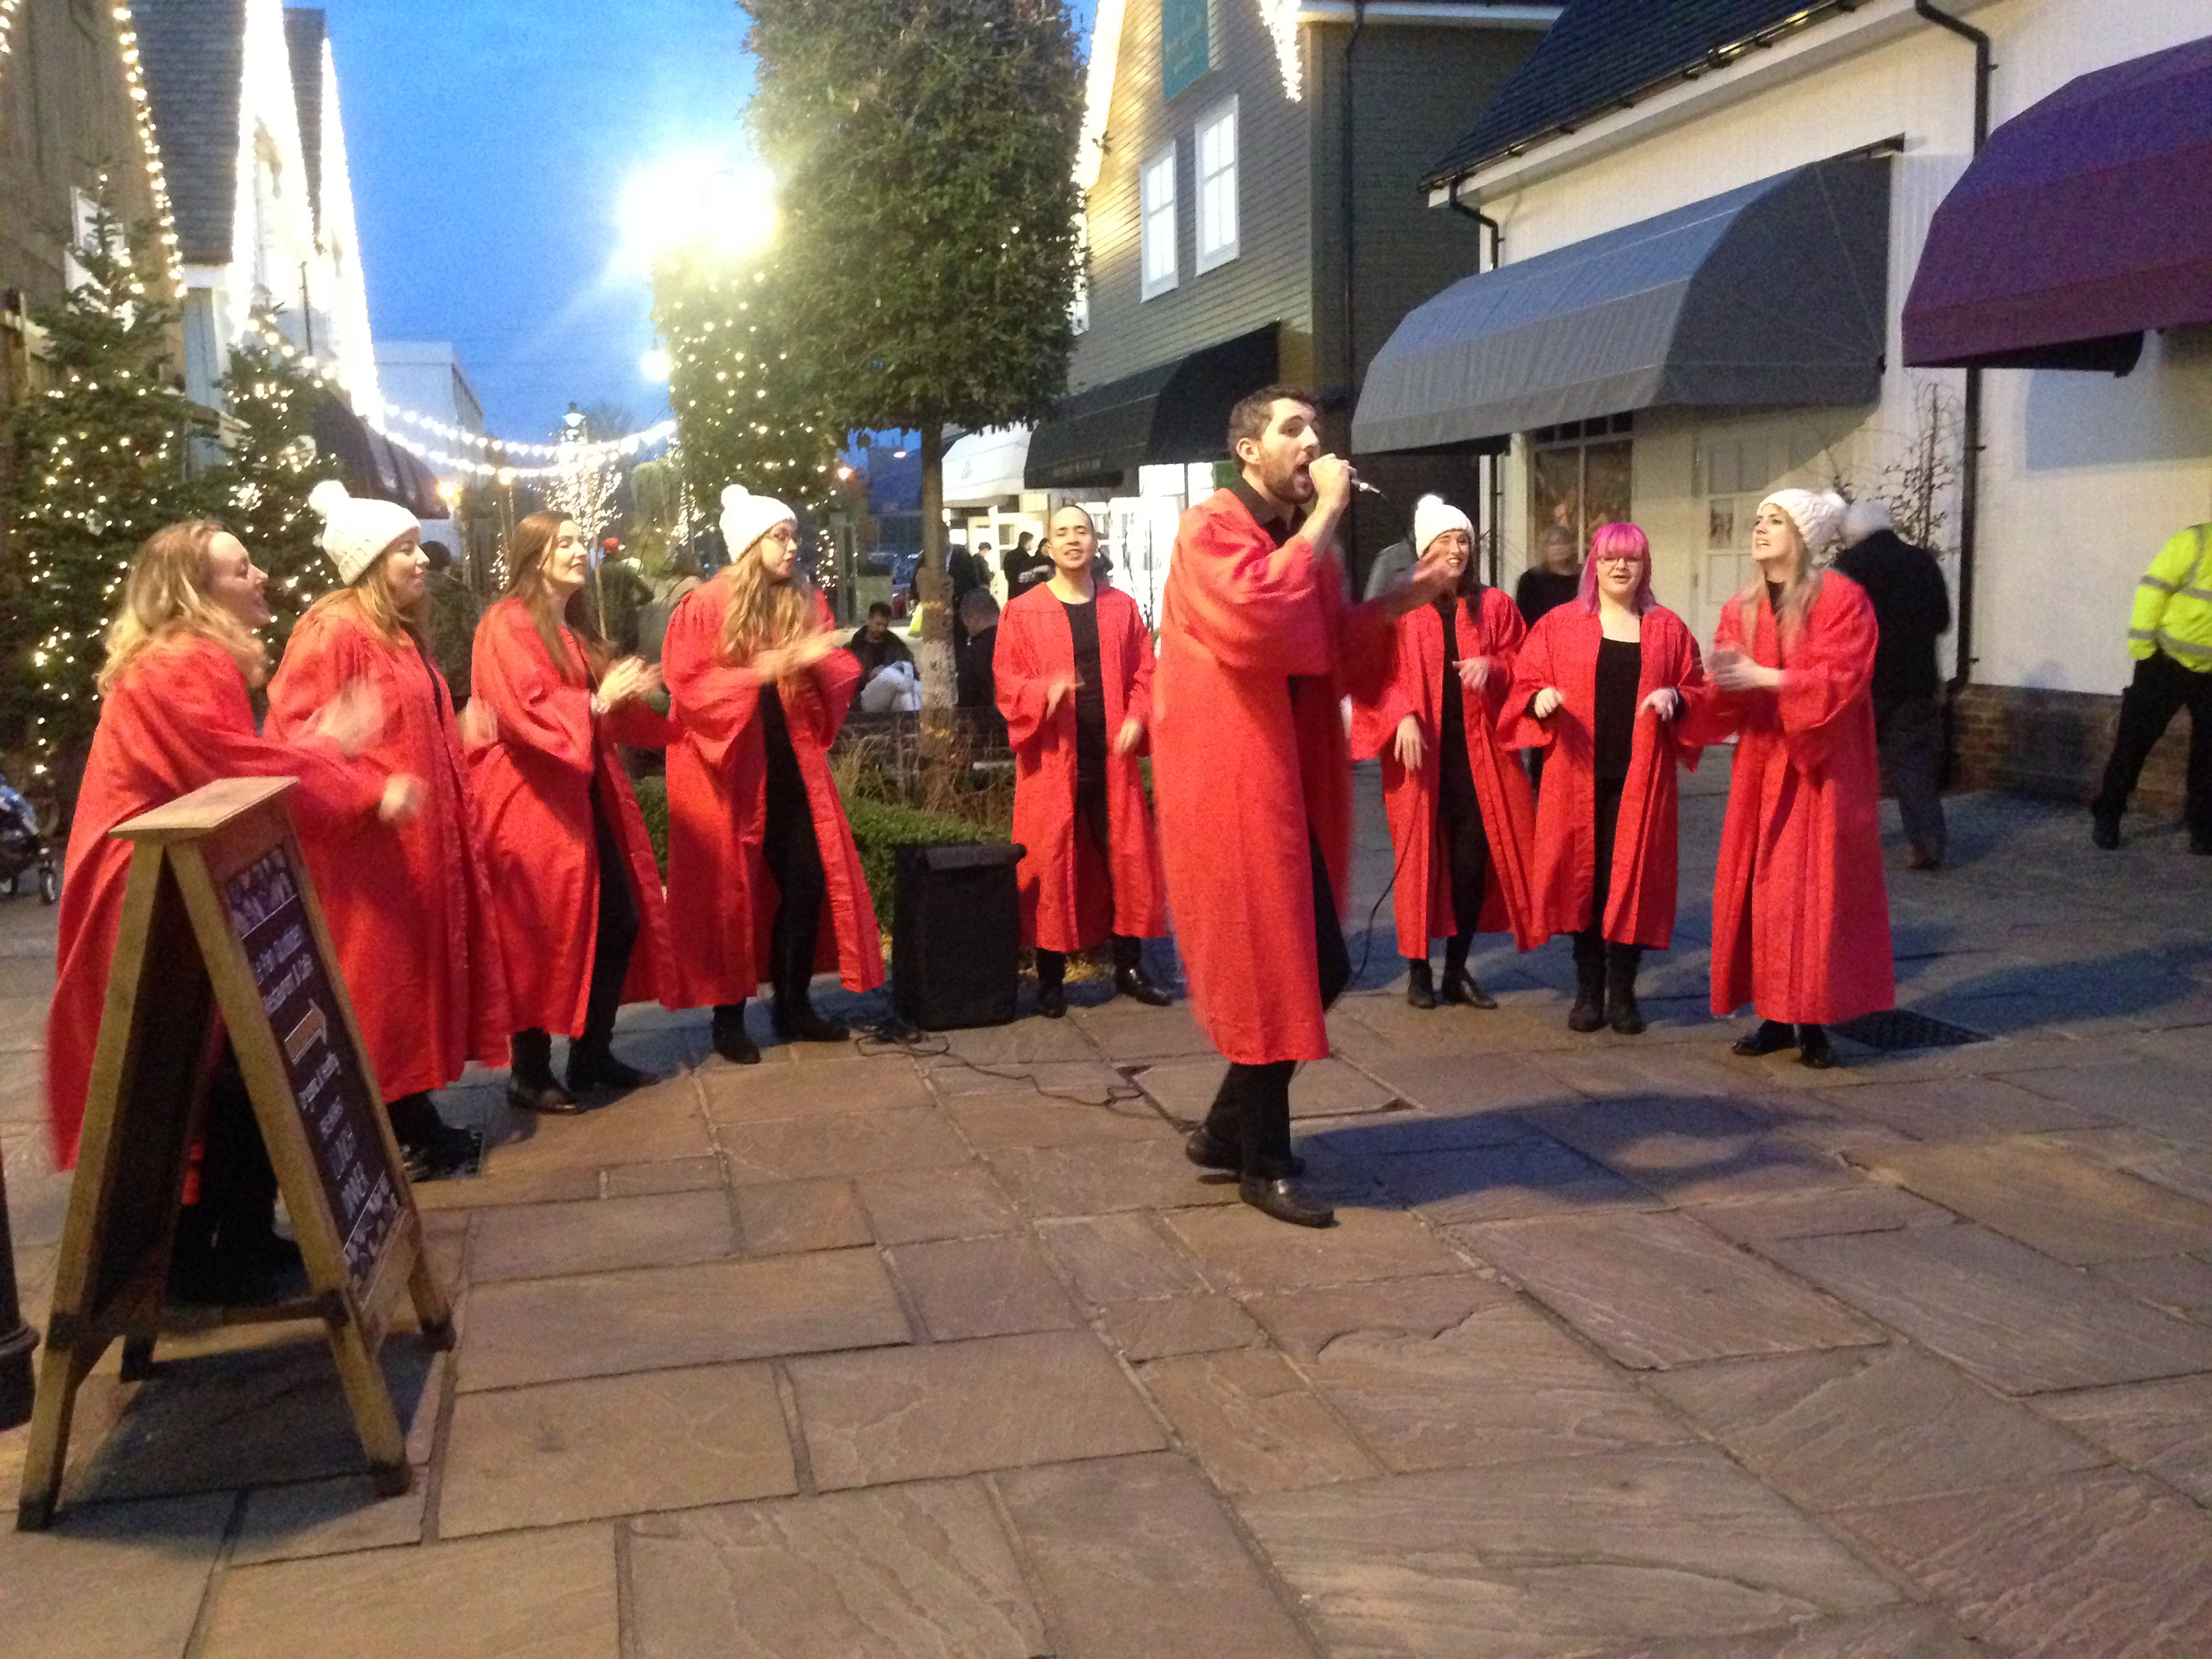 A ten-strong choir in red robes and white bobble hats sing in front of shops at Bicester village